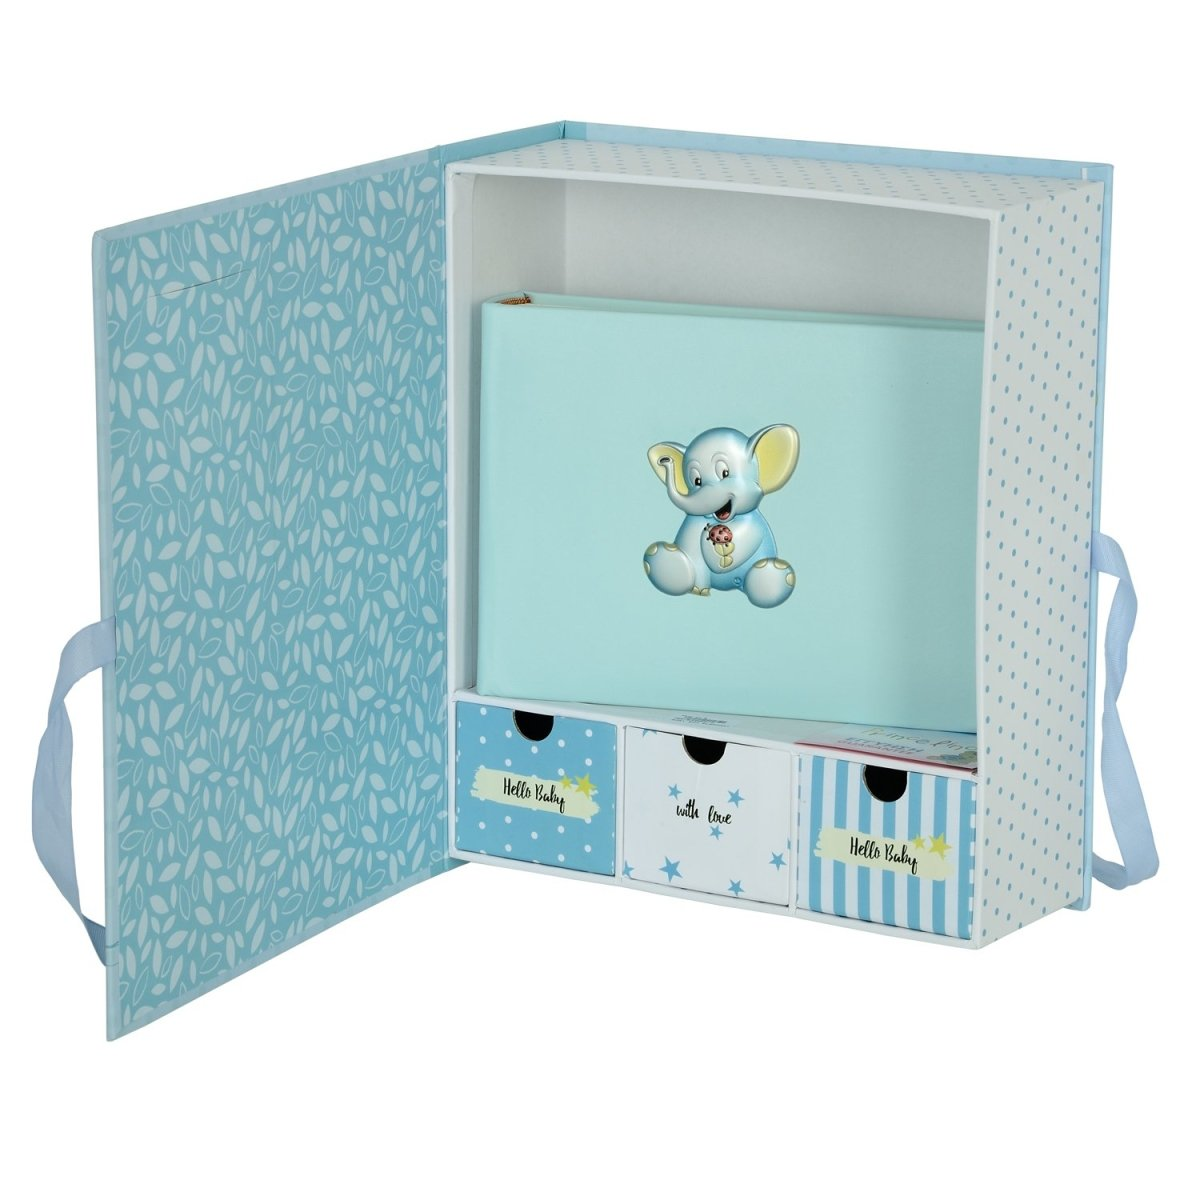 Children's Box MA / BX002-C for Souvenirs From Silver for Boy - Goldy Jewelry Store